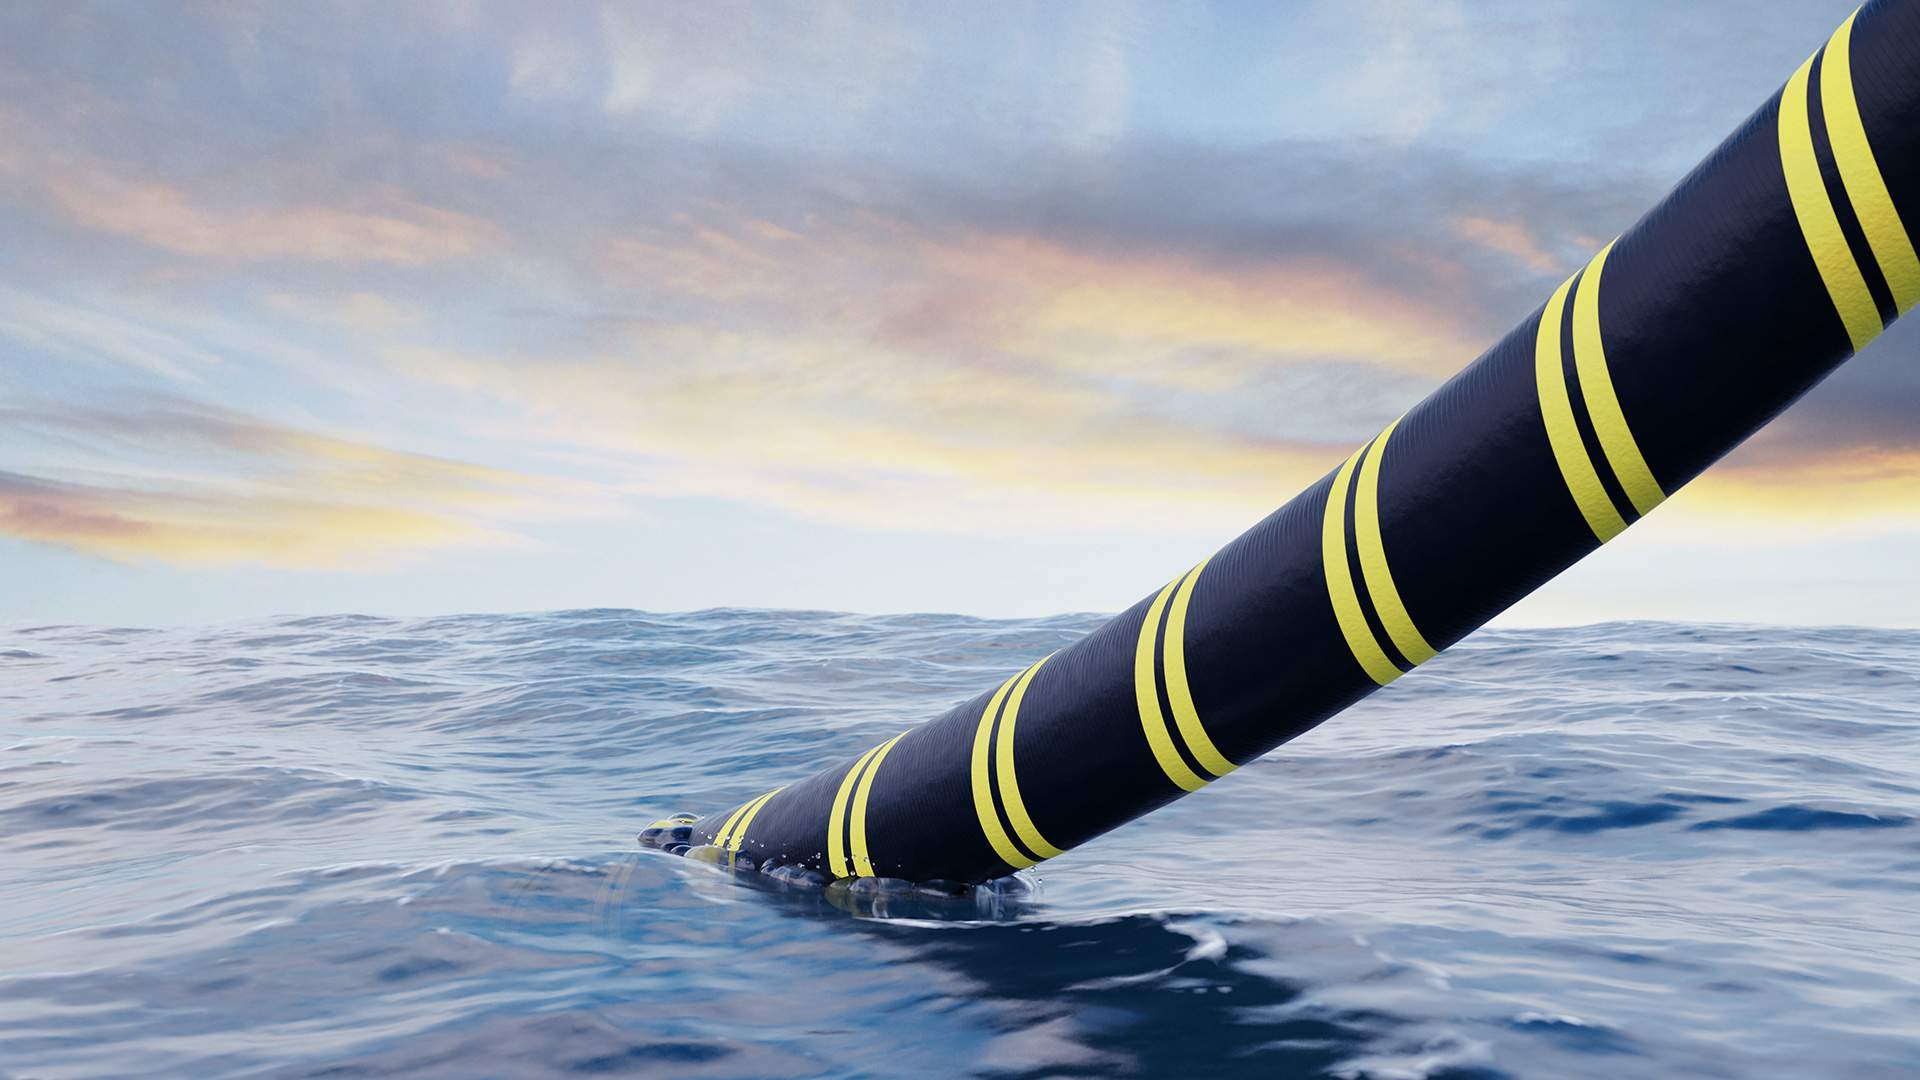 FALCON & FEA submarine cables repaired ahead of schedule